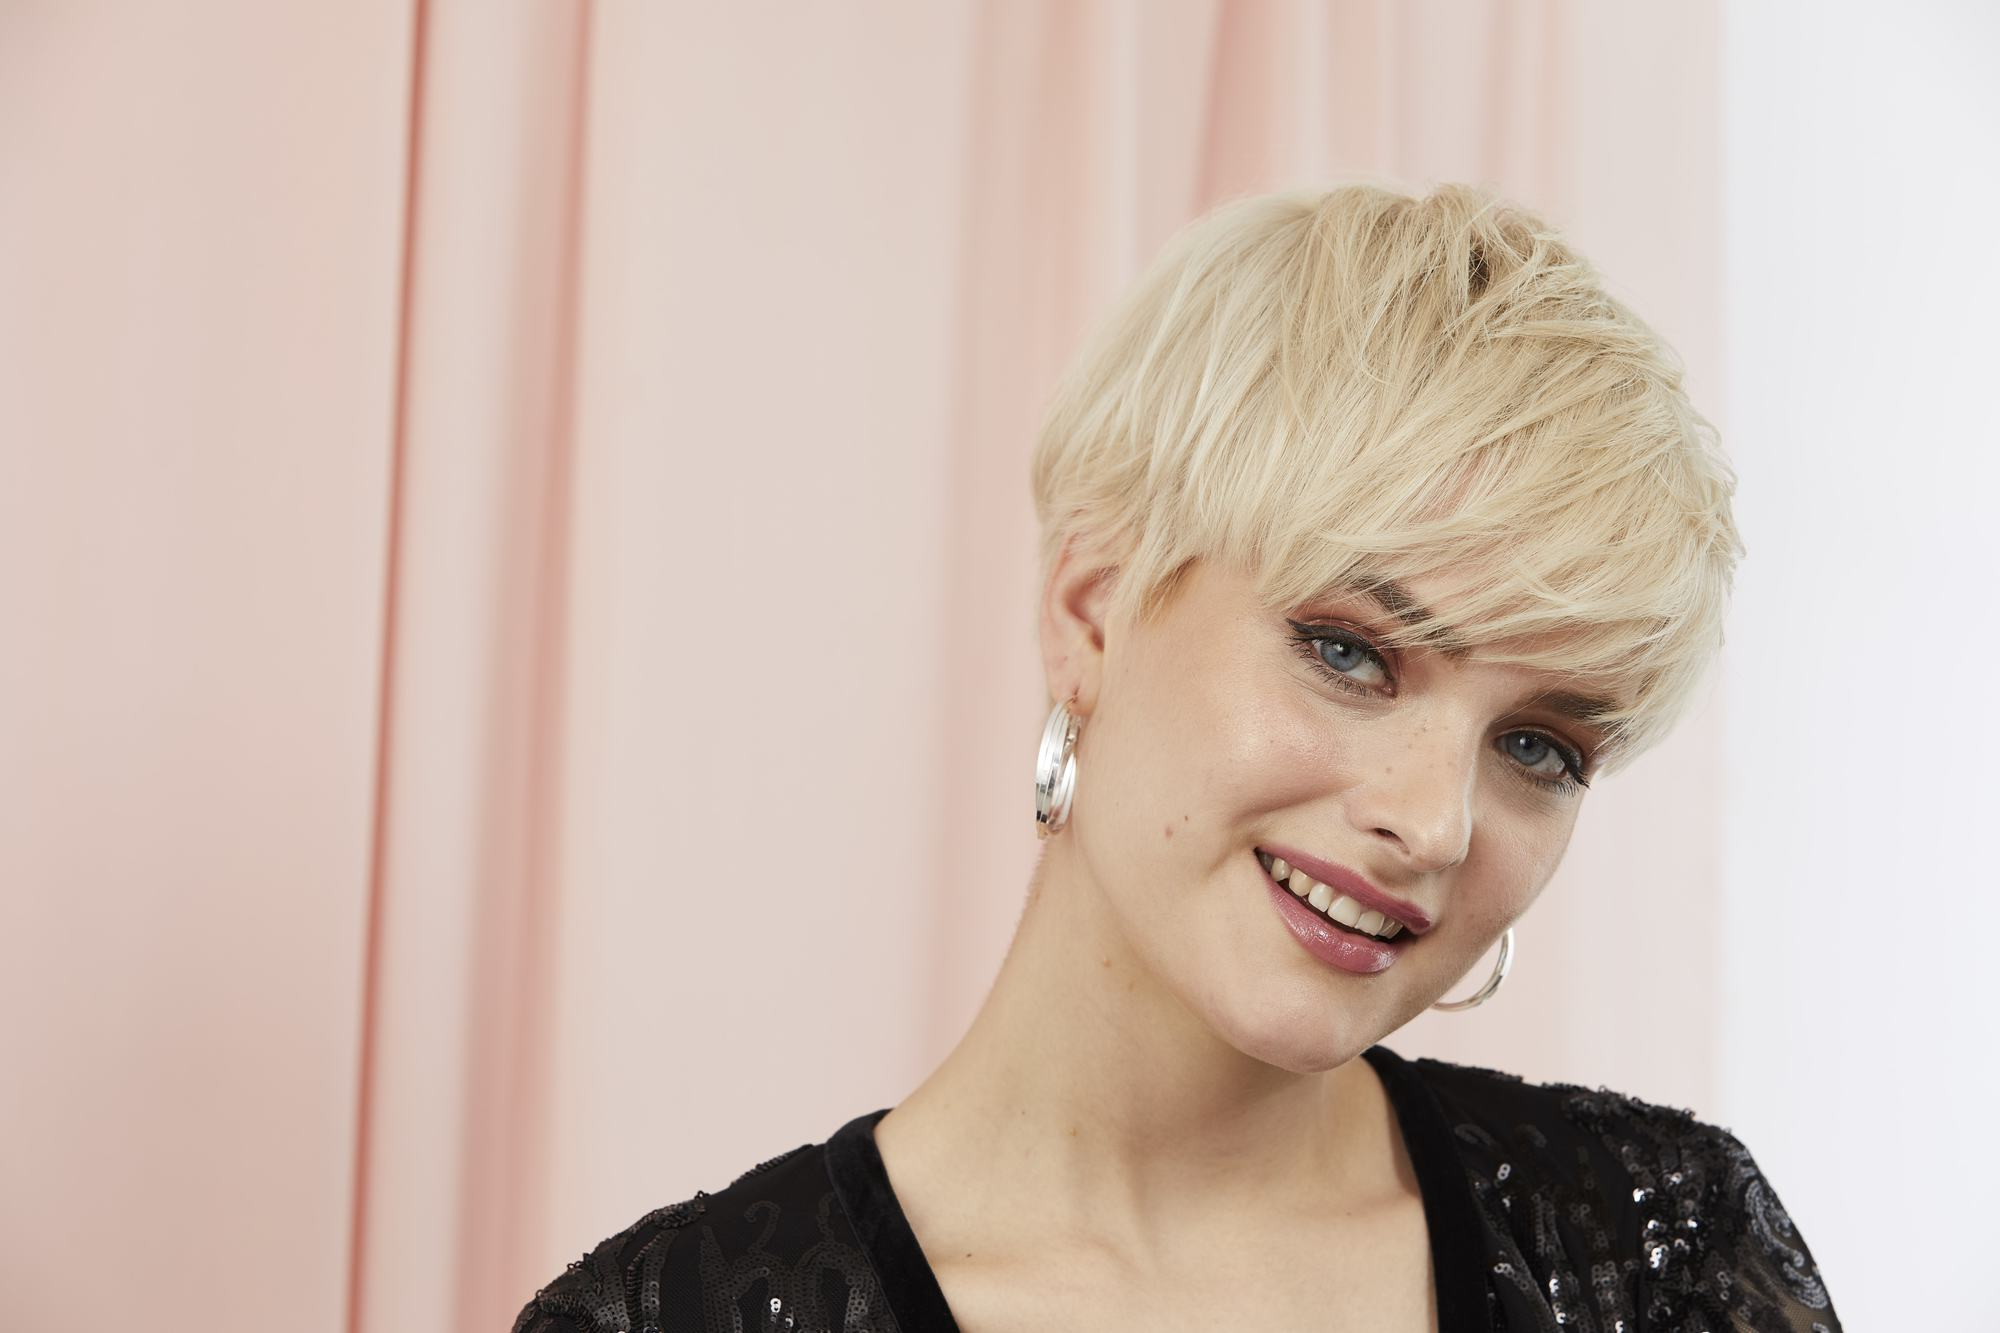 35 Best Pixie Cut Hairstyles For 2019 You Will Want To See Regarding Messy Highlighted Pixie Haircuts With Long Side Bangs (View 6 of 20)